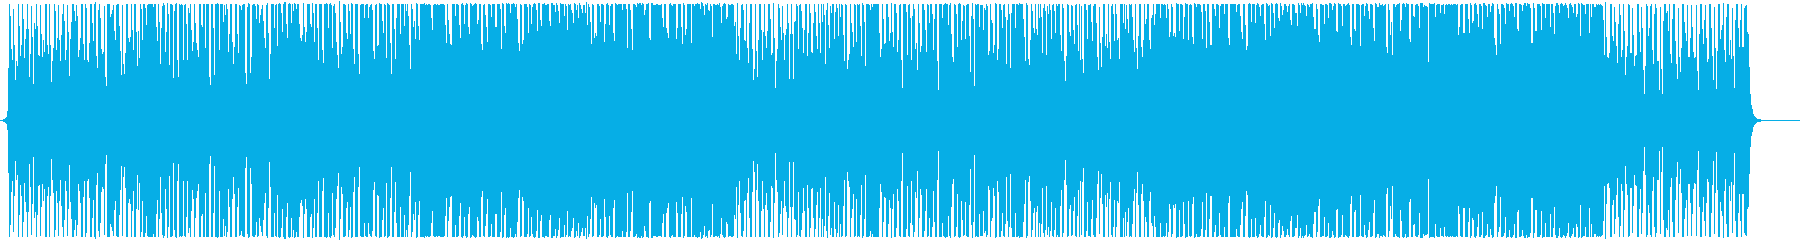 I'm excited to hear exciting live music BGM's reproduced waveform